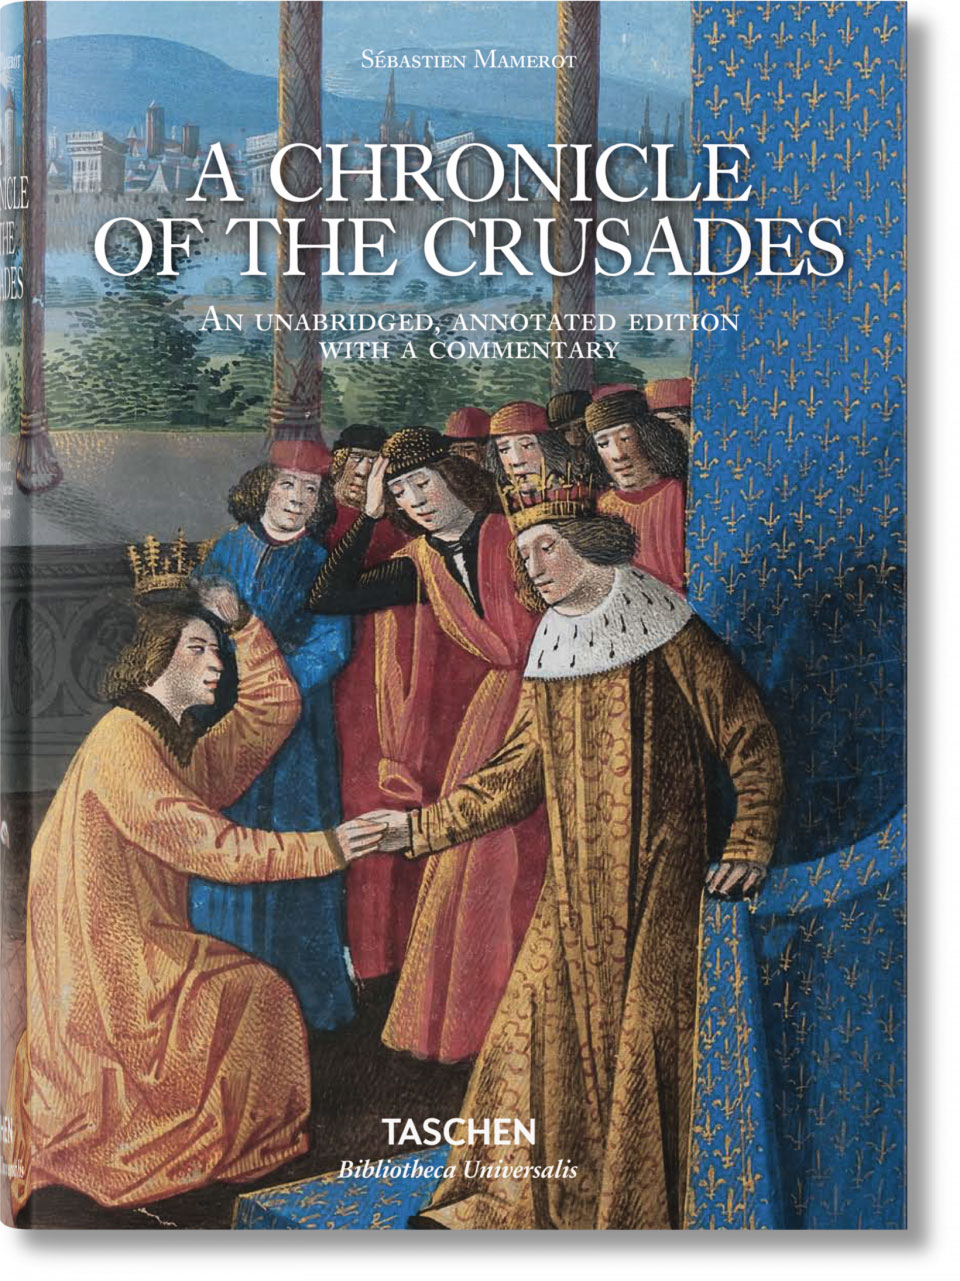 A Chronicle of the Crusades klotz sc1pp02sw